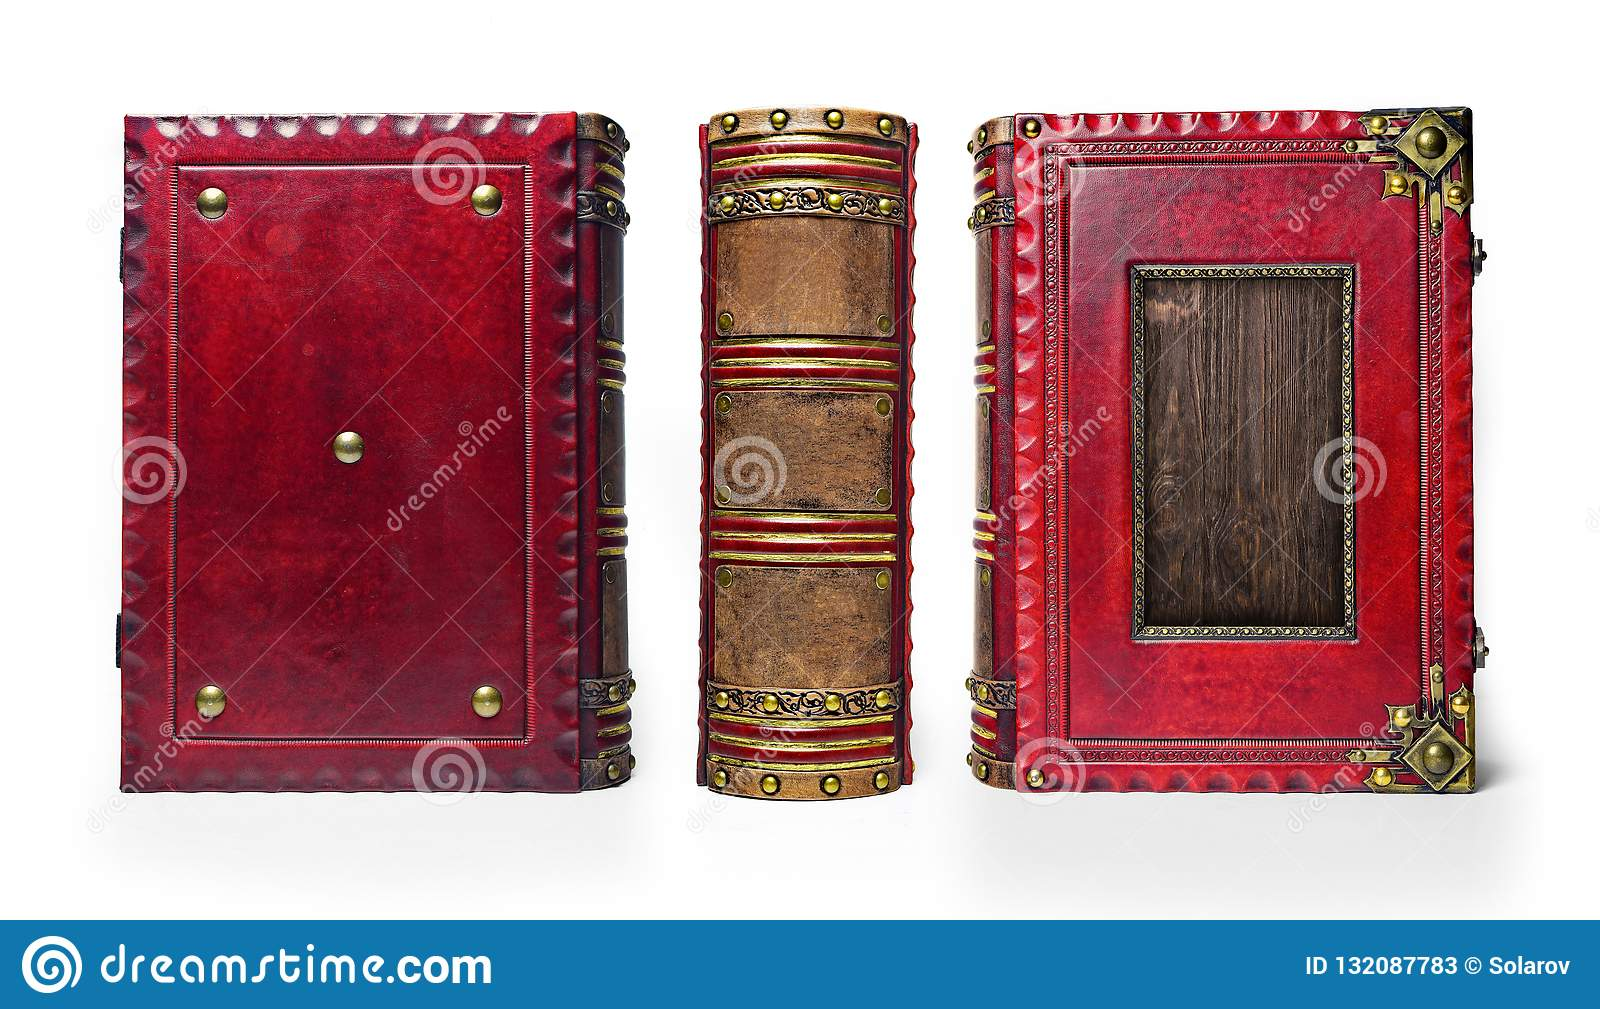 Large and thick aged red leather book with wooden plate